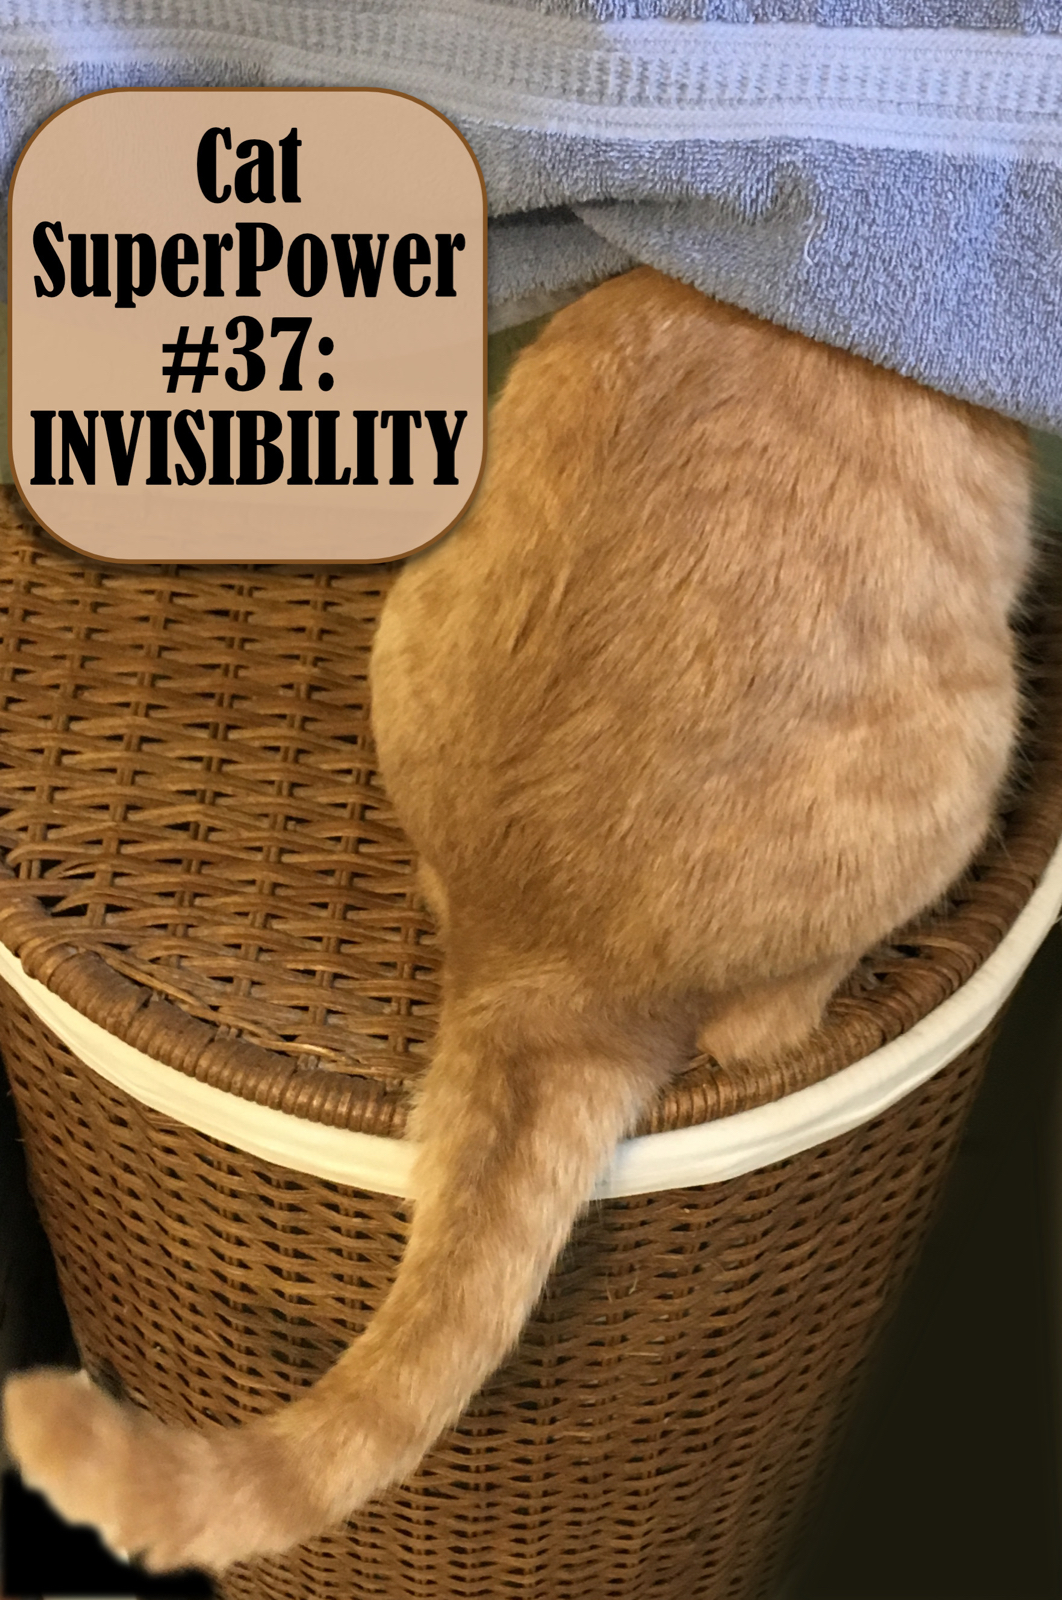 Cat-Superpower #37: Invisibility